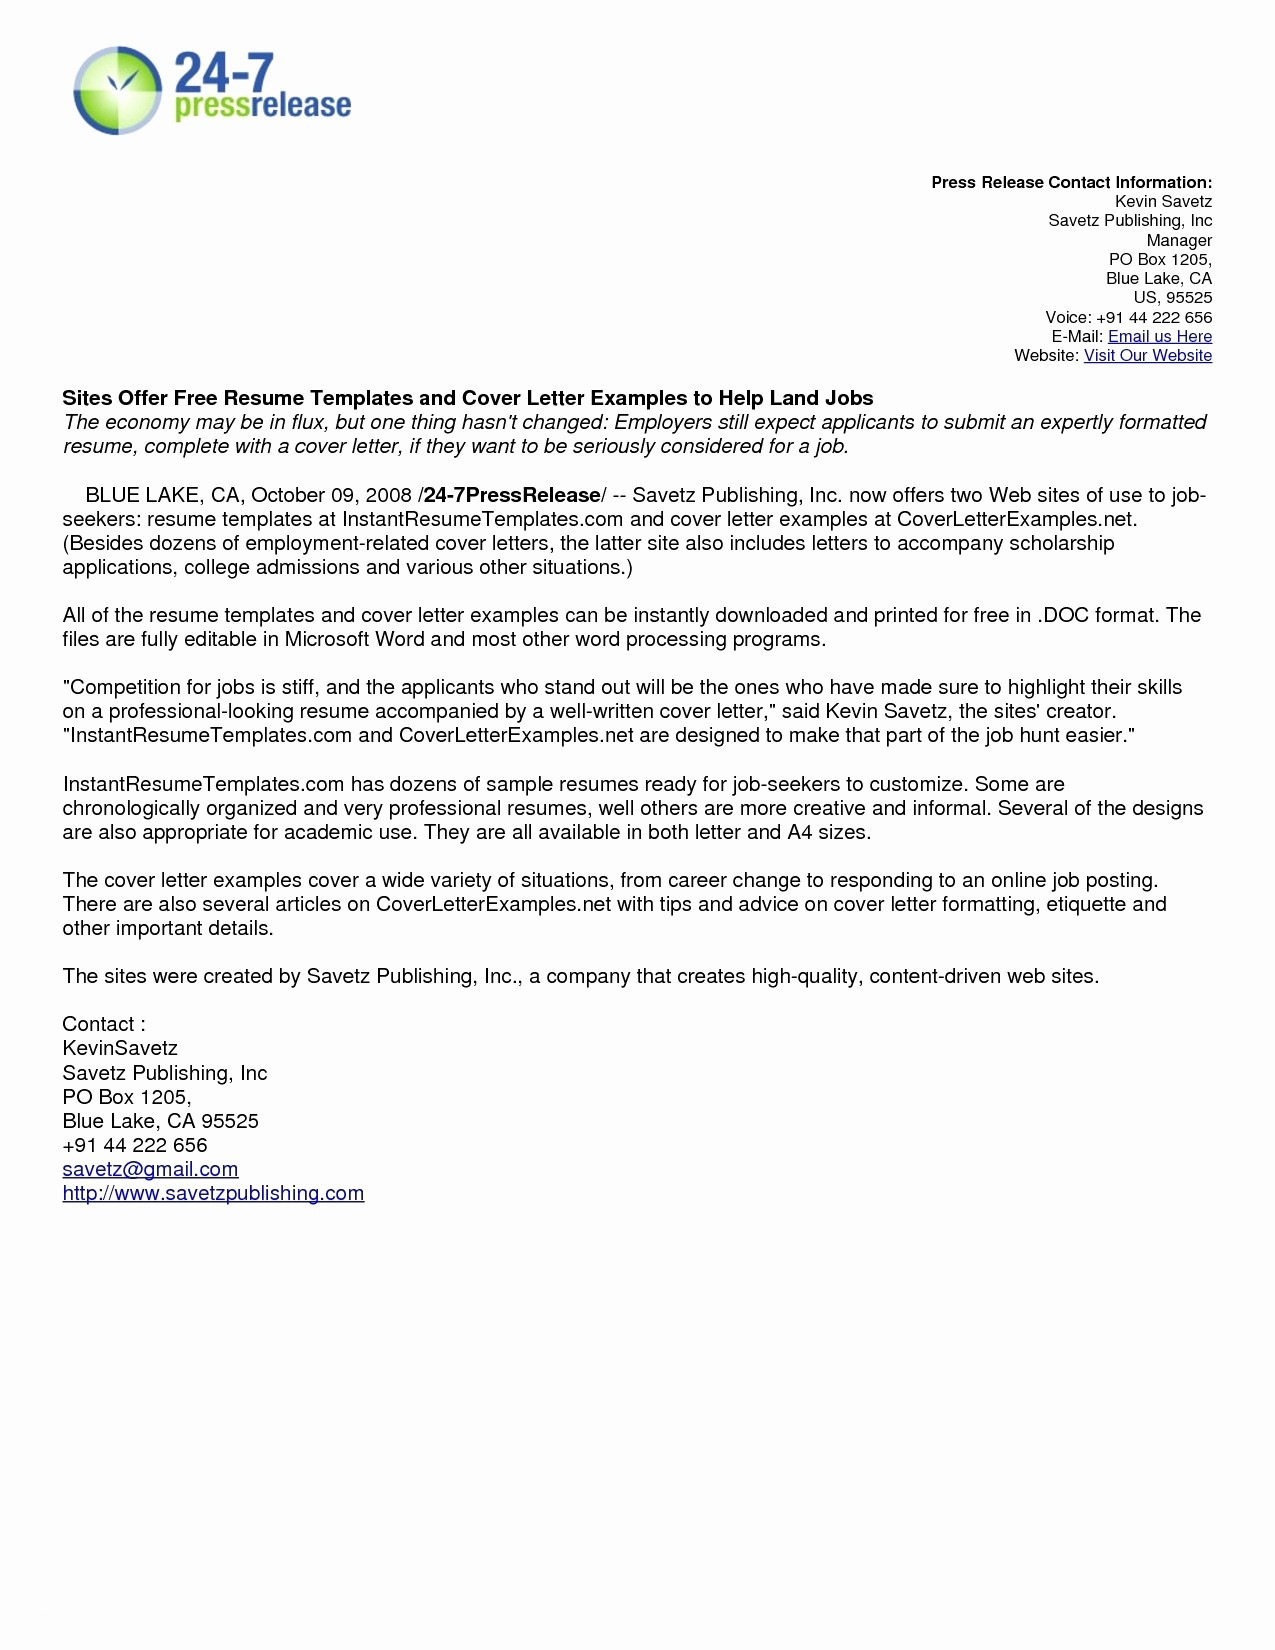 Business Cover Letter Template Download - Download Free Resume Best Free Resume Examples Fresh Business